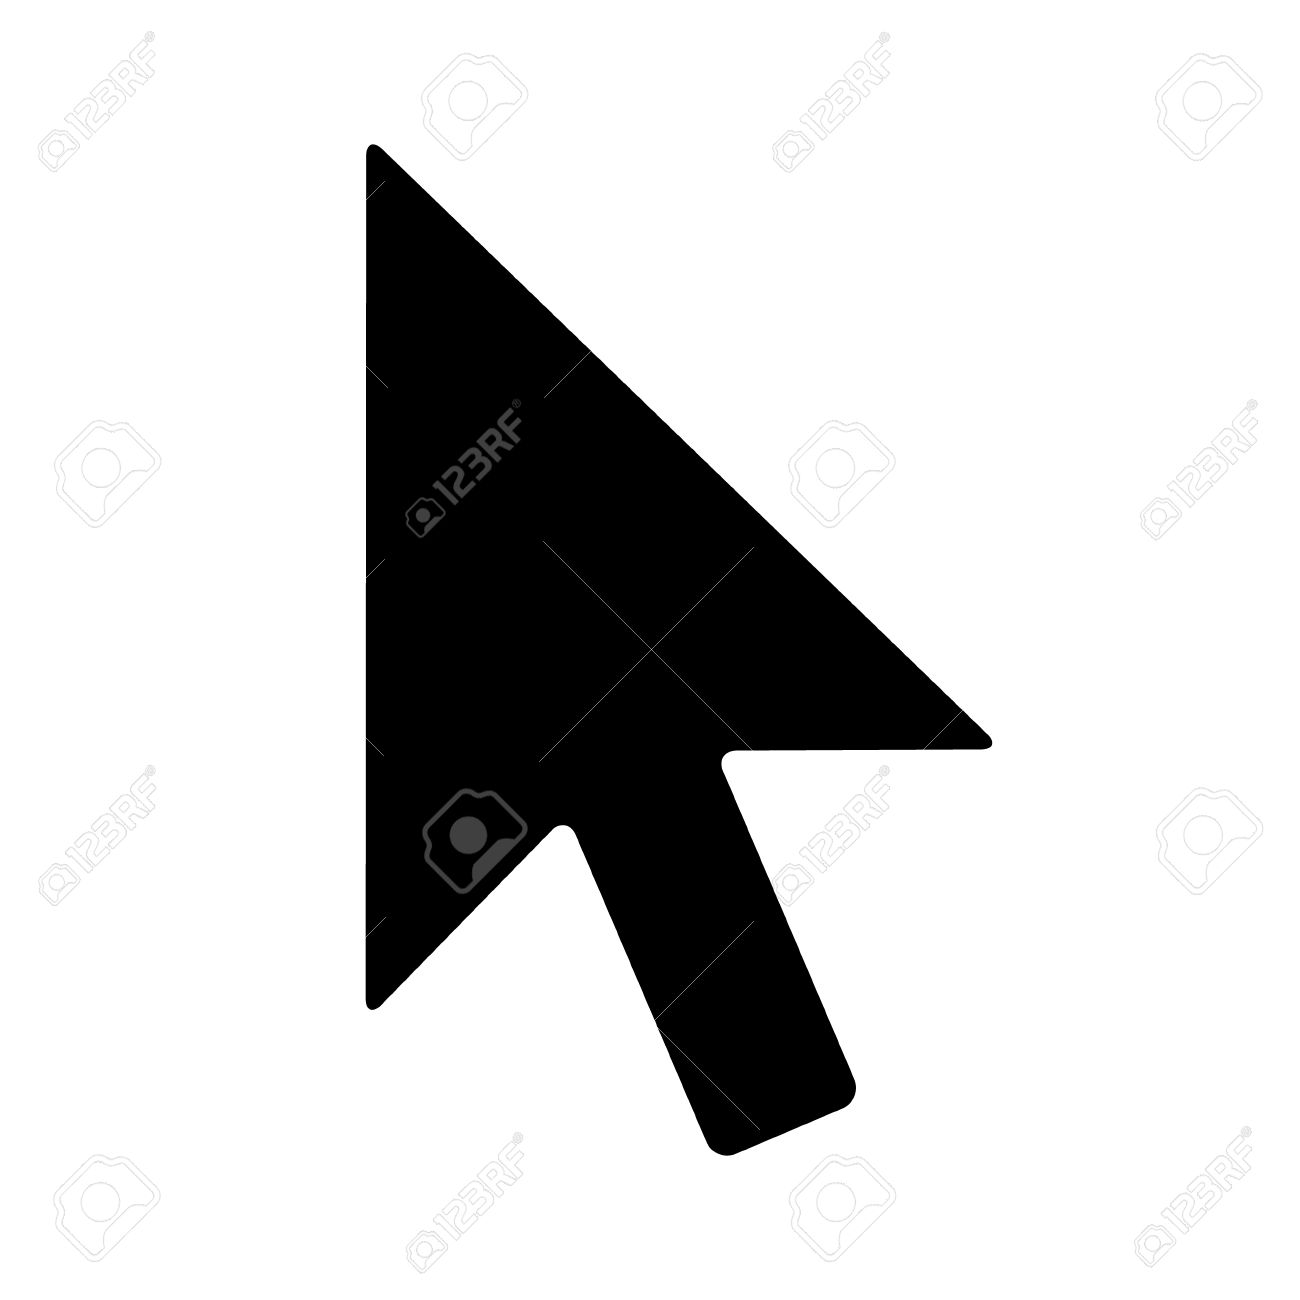 Computer mouse pointer cursor arrow flat icon for apps and websites - 57642583